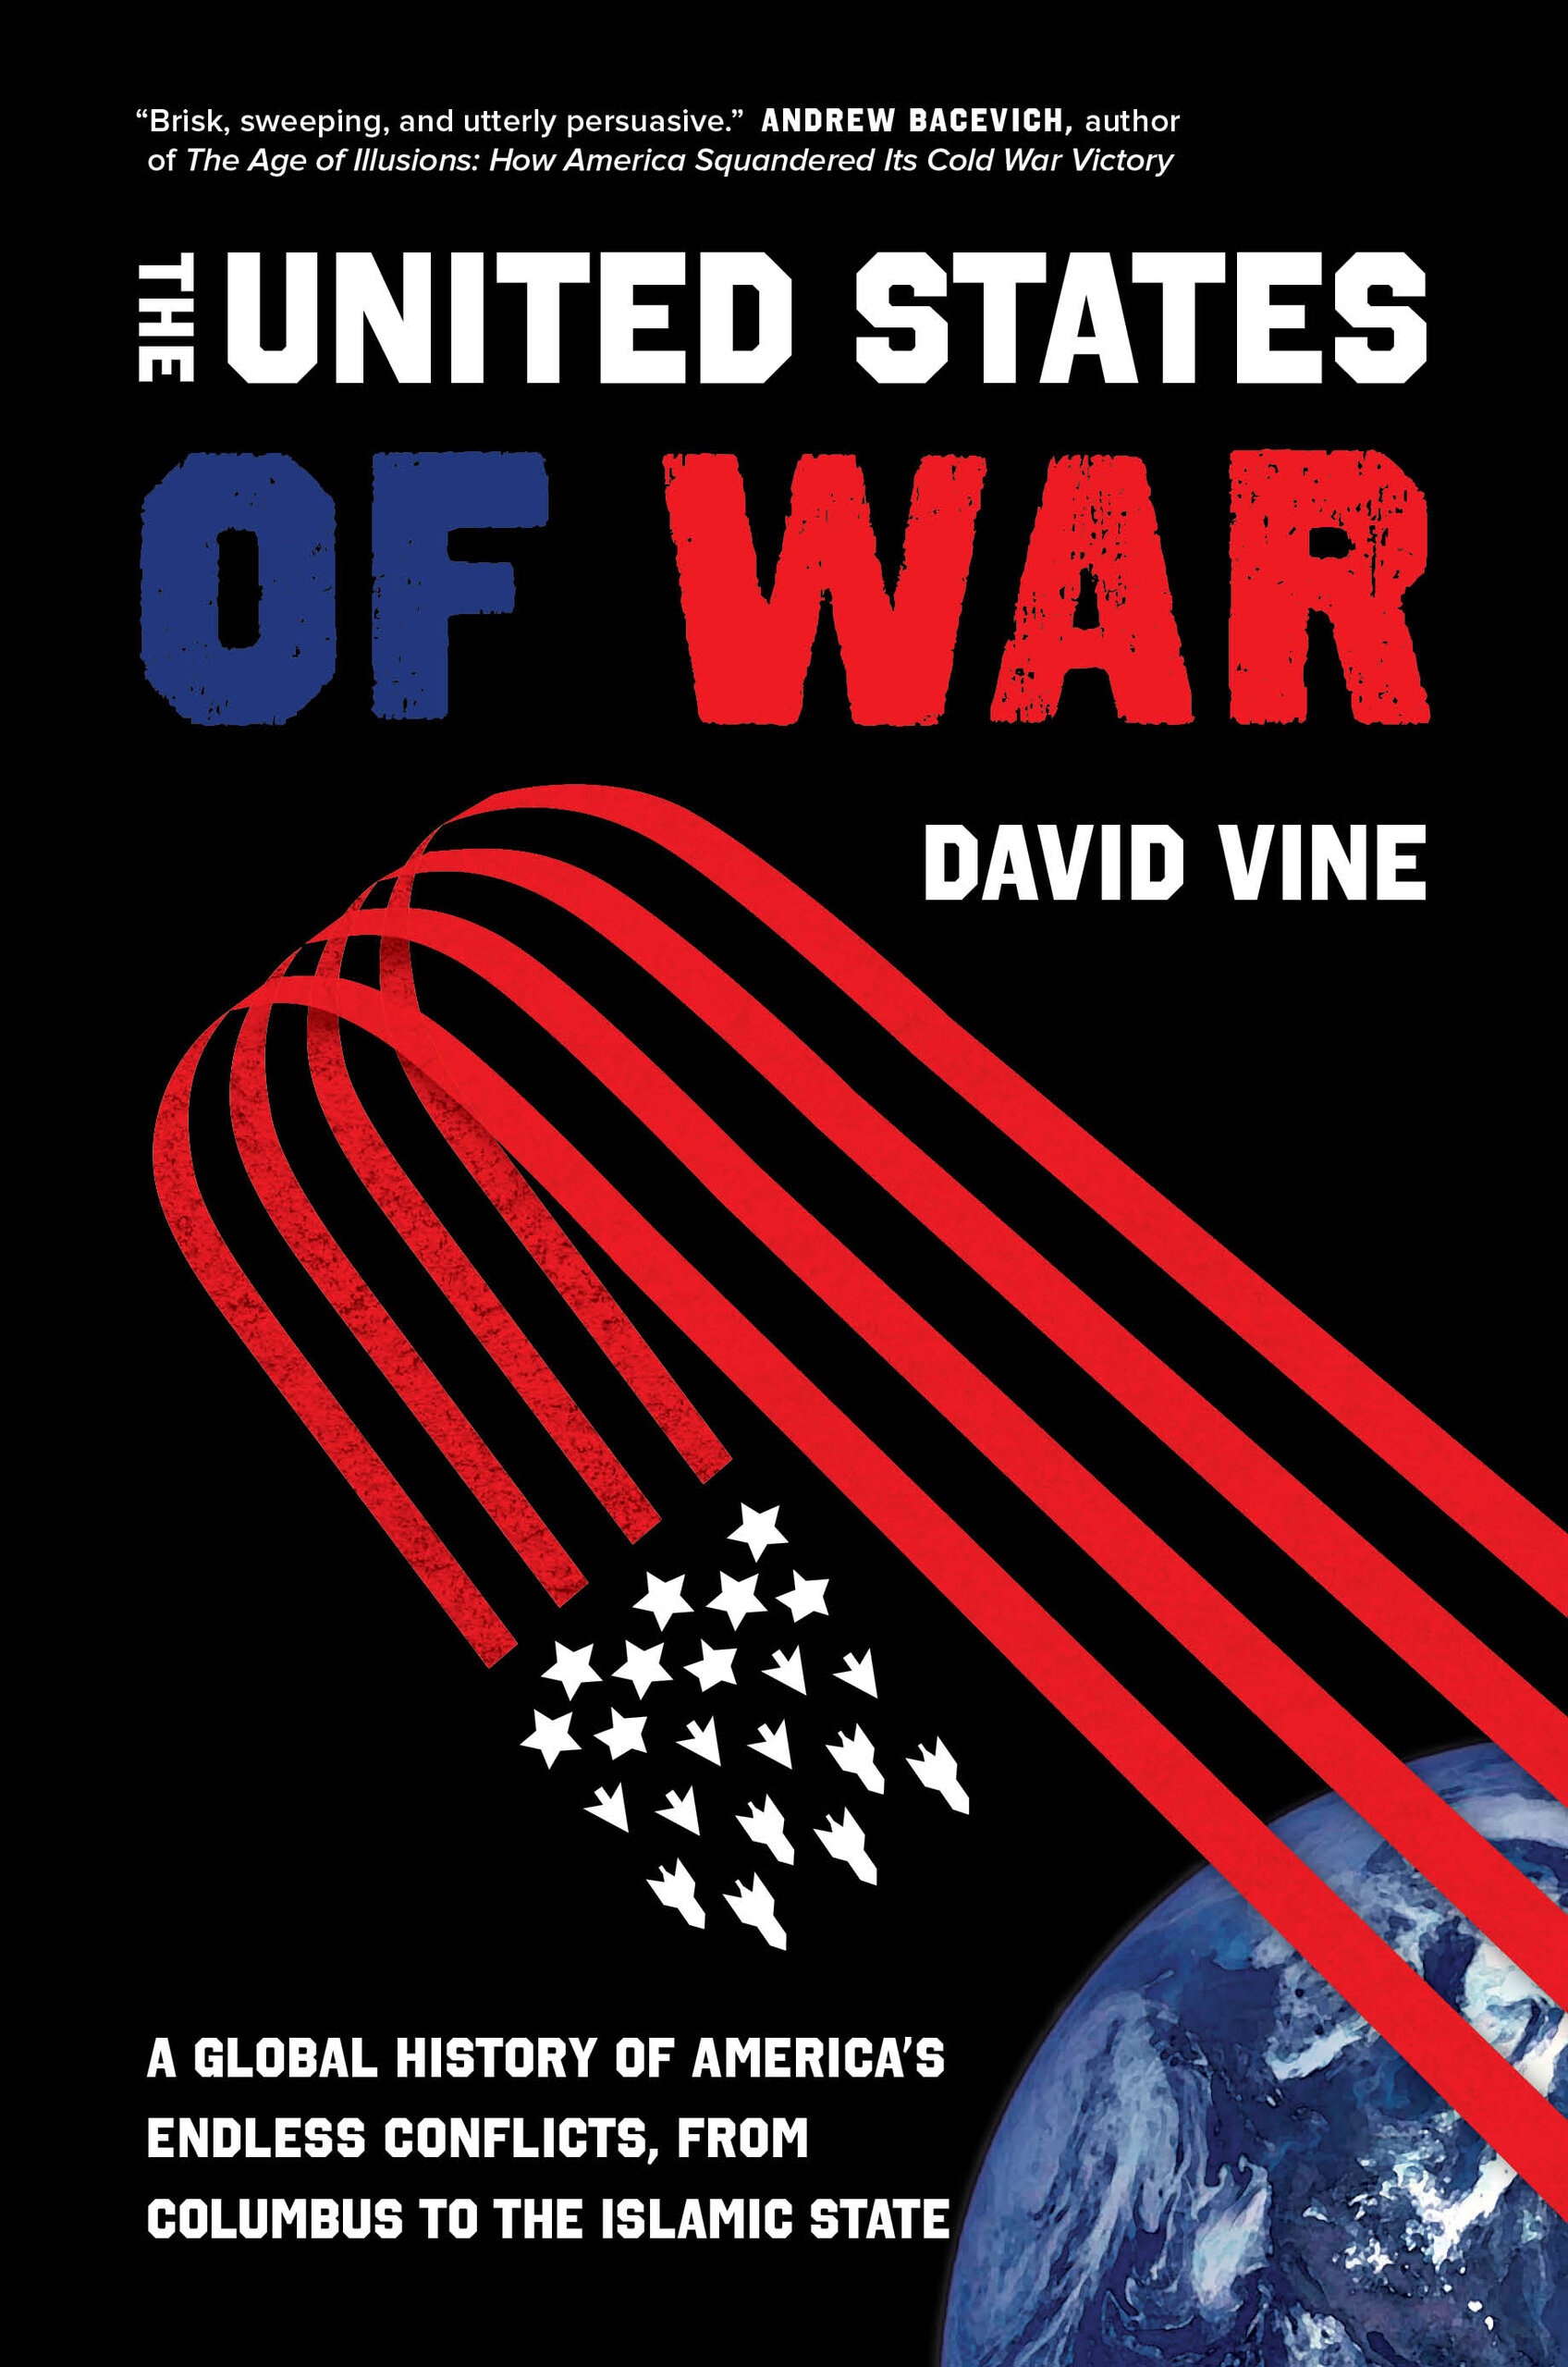 The United States of War by David Vine - Hardcover - University of  California Press